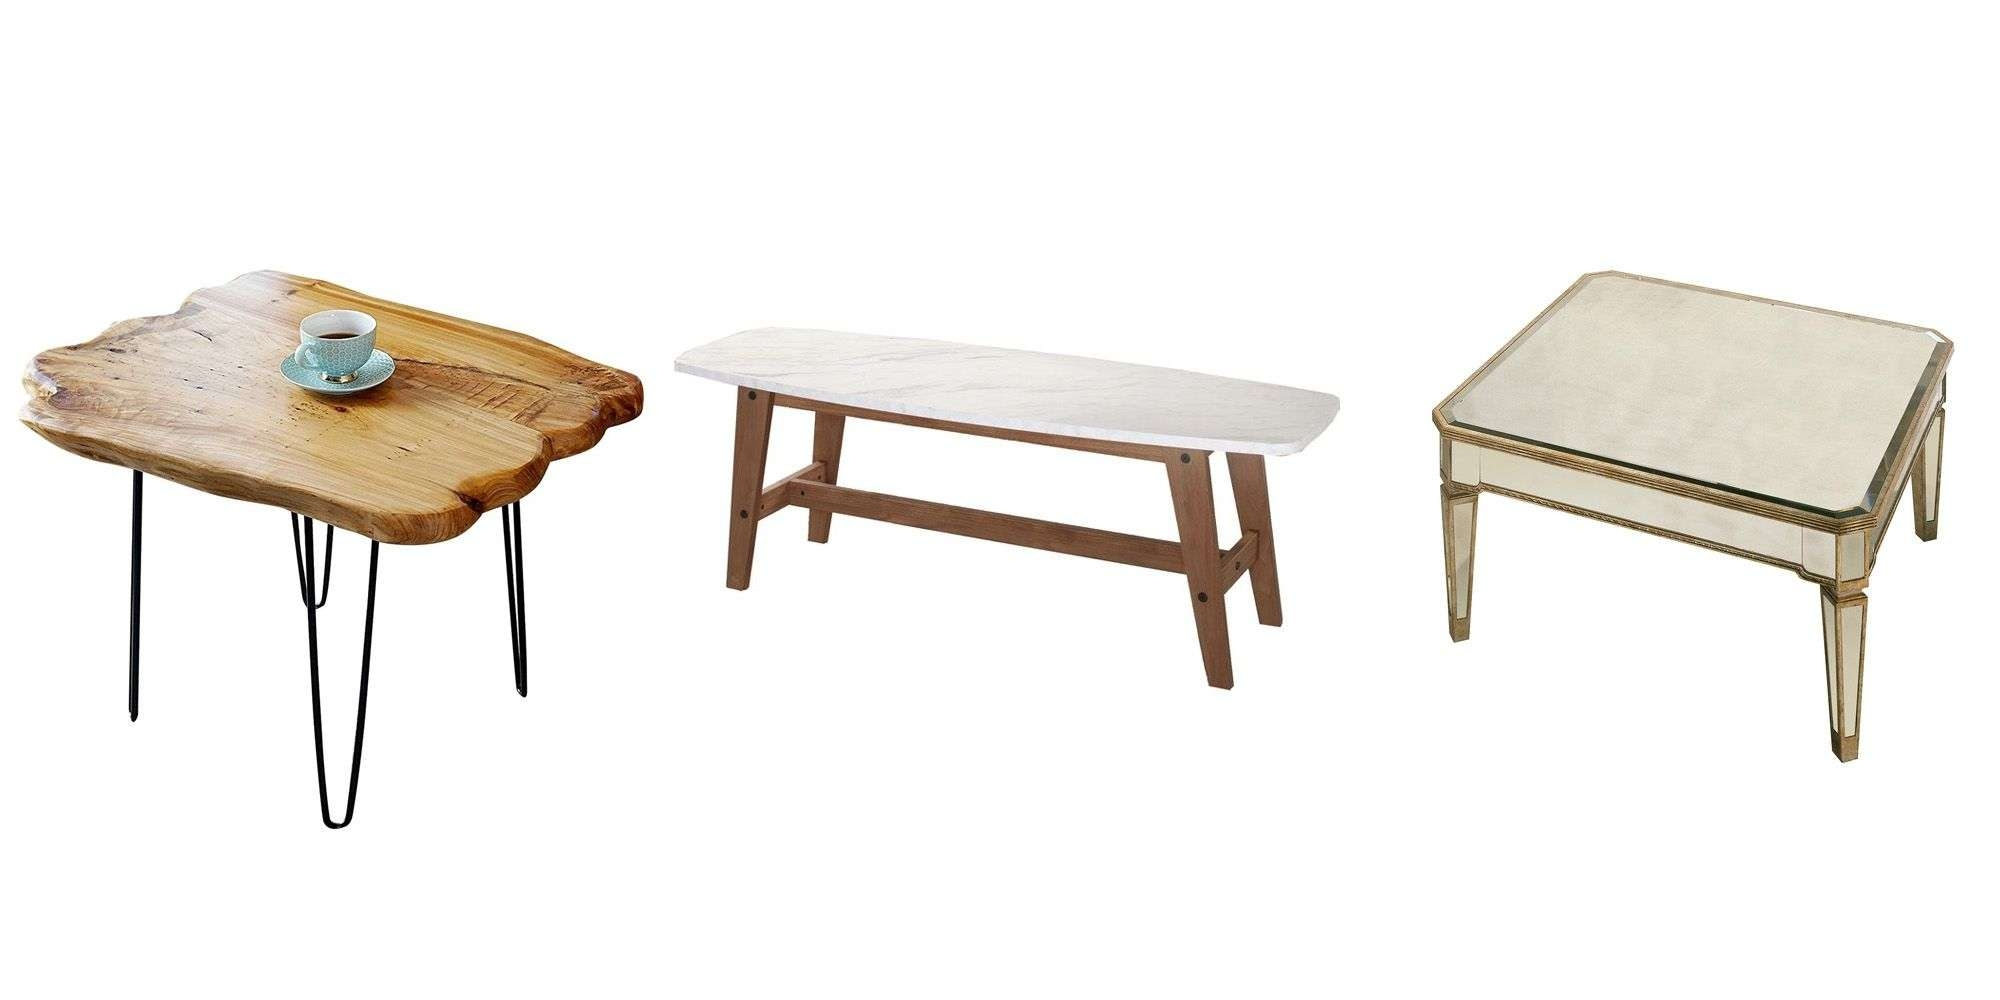 20 Best Small Coffee Tables – Furniture For Small Spaces Intended For Most Popular Small Coffee Tables (View 3 of 20)